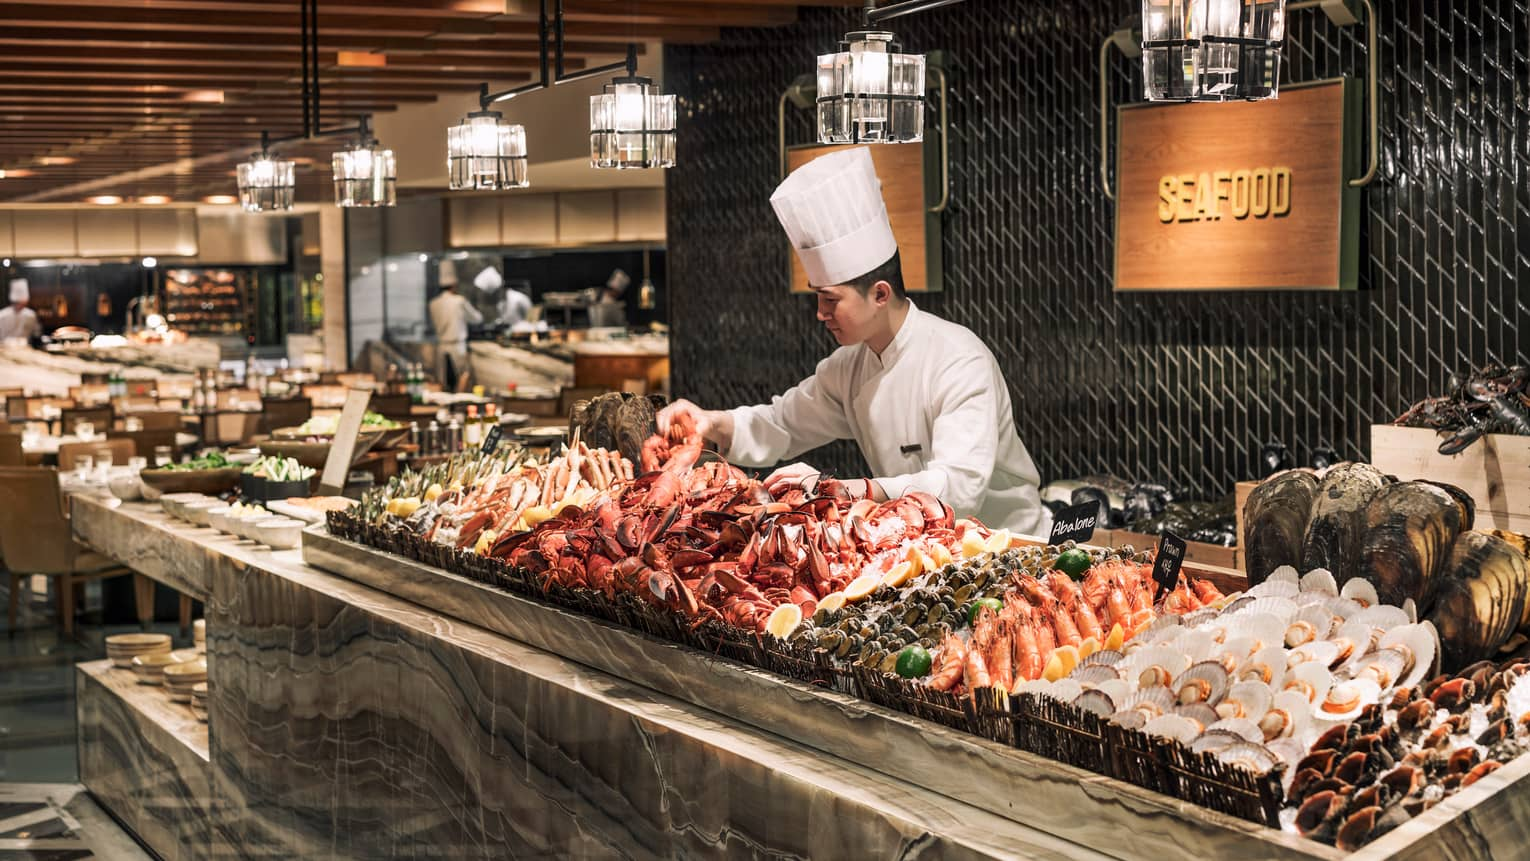 Chef wearing tall white hat arranges fresh lobster, seafood on ice at buffet The Market Kitchen buffet station